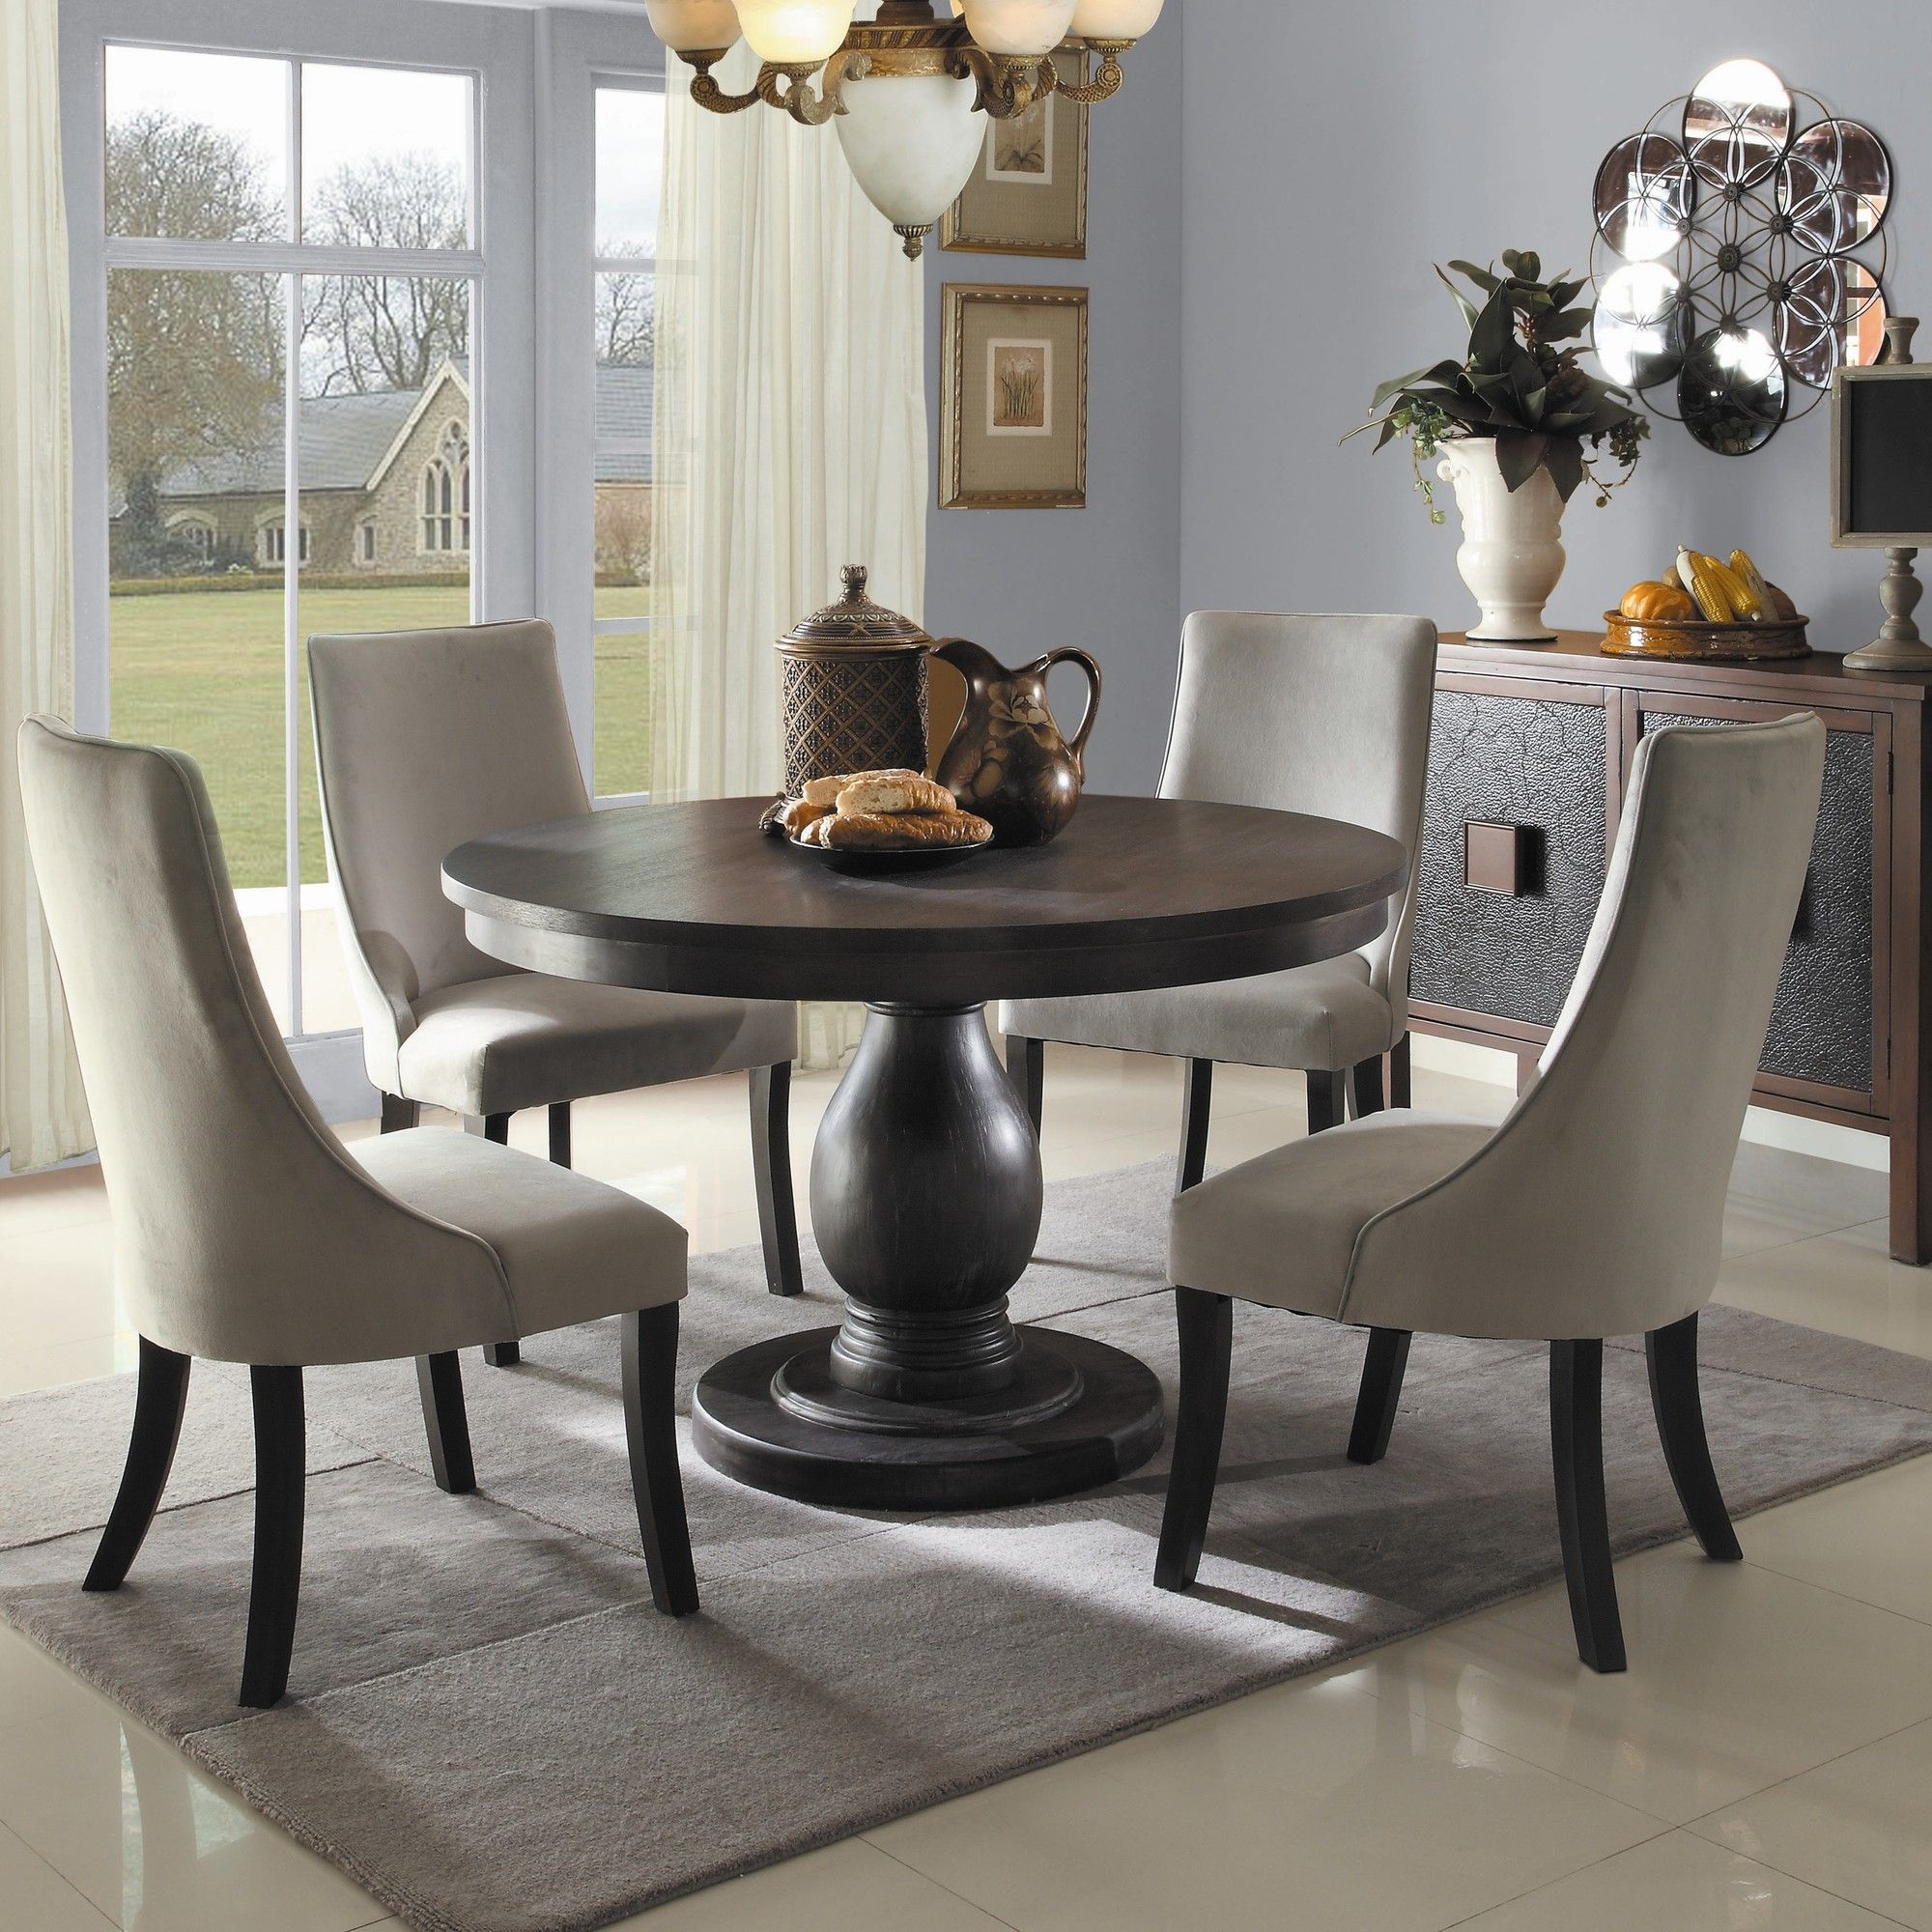 Comfortable Home Kitchen And Dining Room Furnishing Ideas With